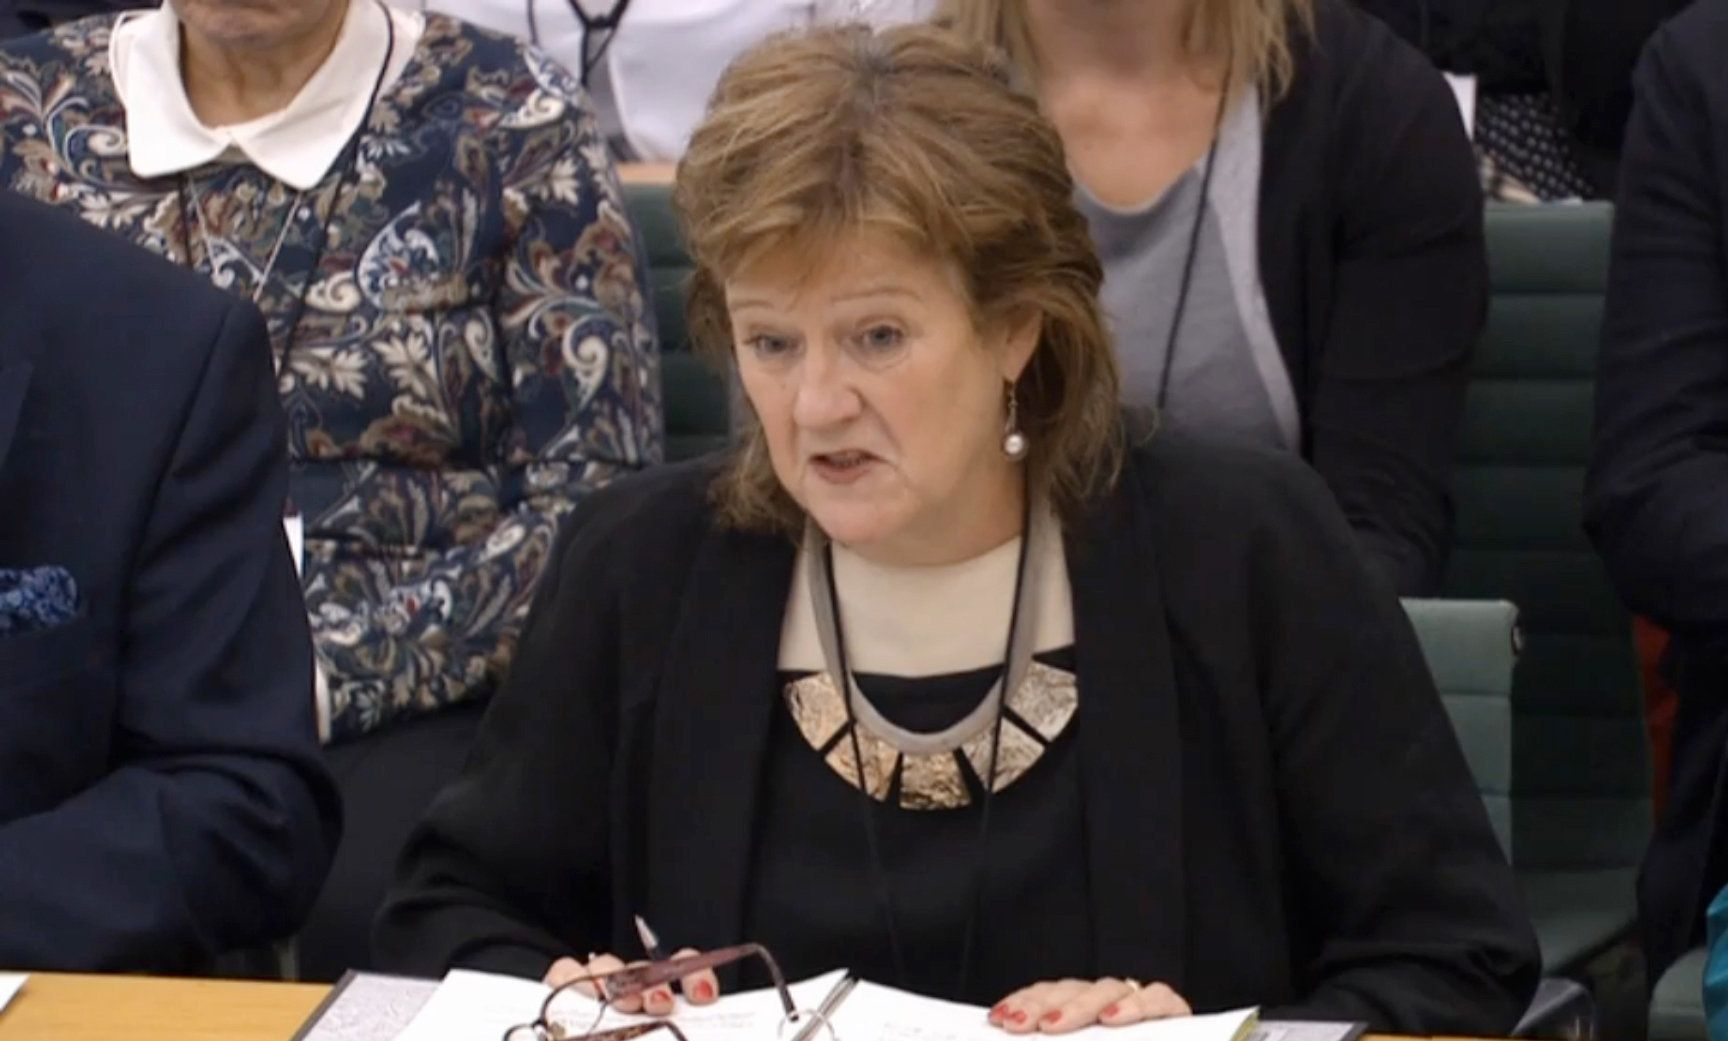 Professor Alexis Jay took over the Independent Inquiry into Child Sexual Abuse in August 2016 after the...